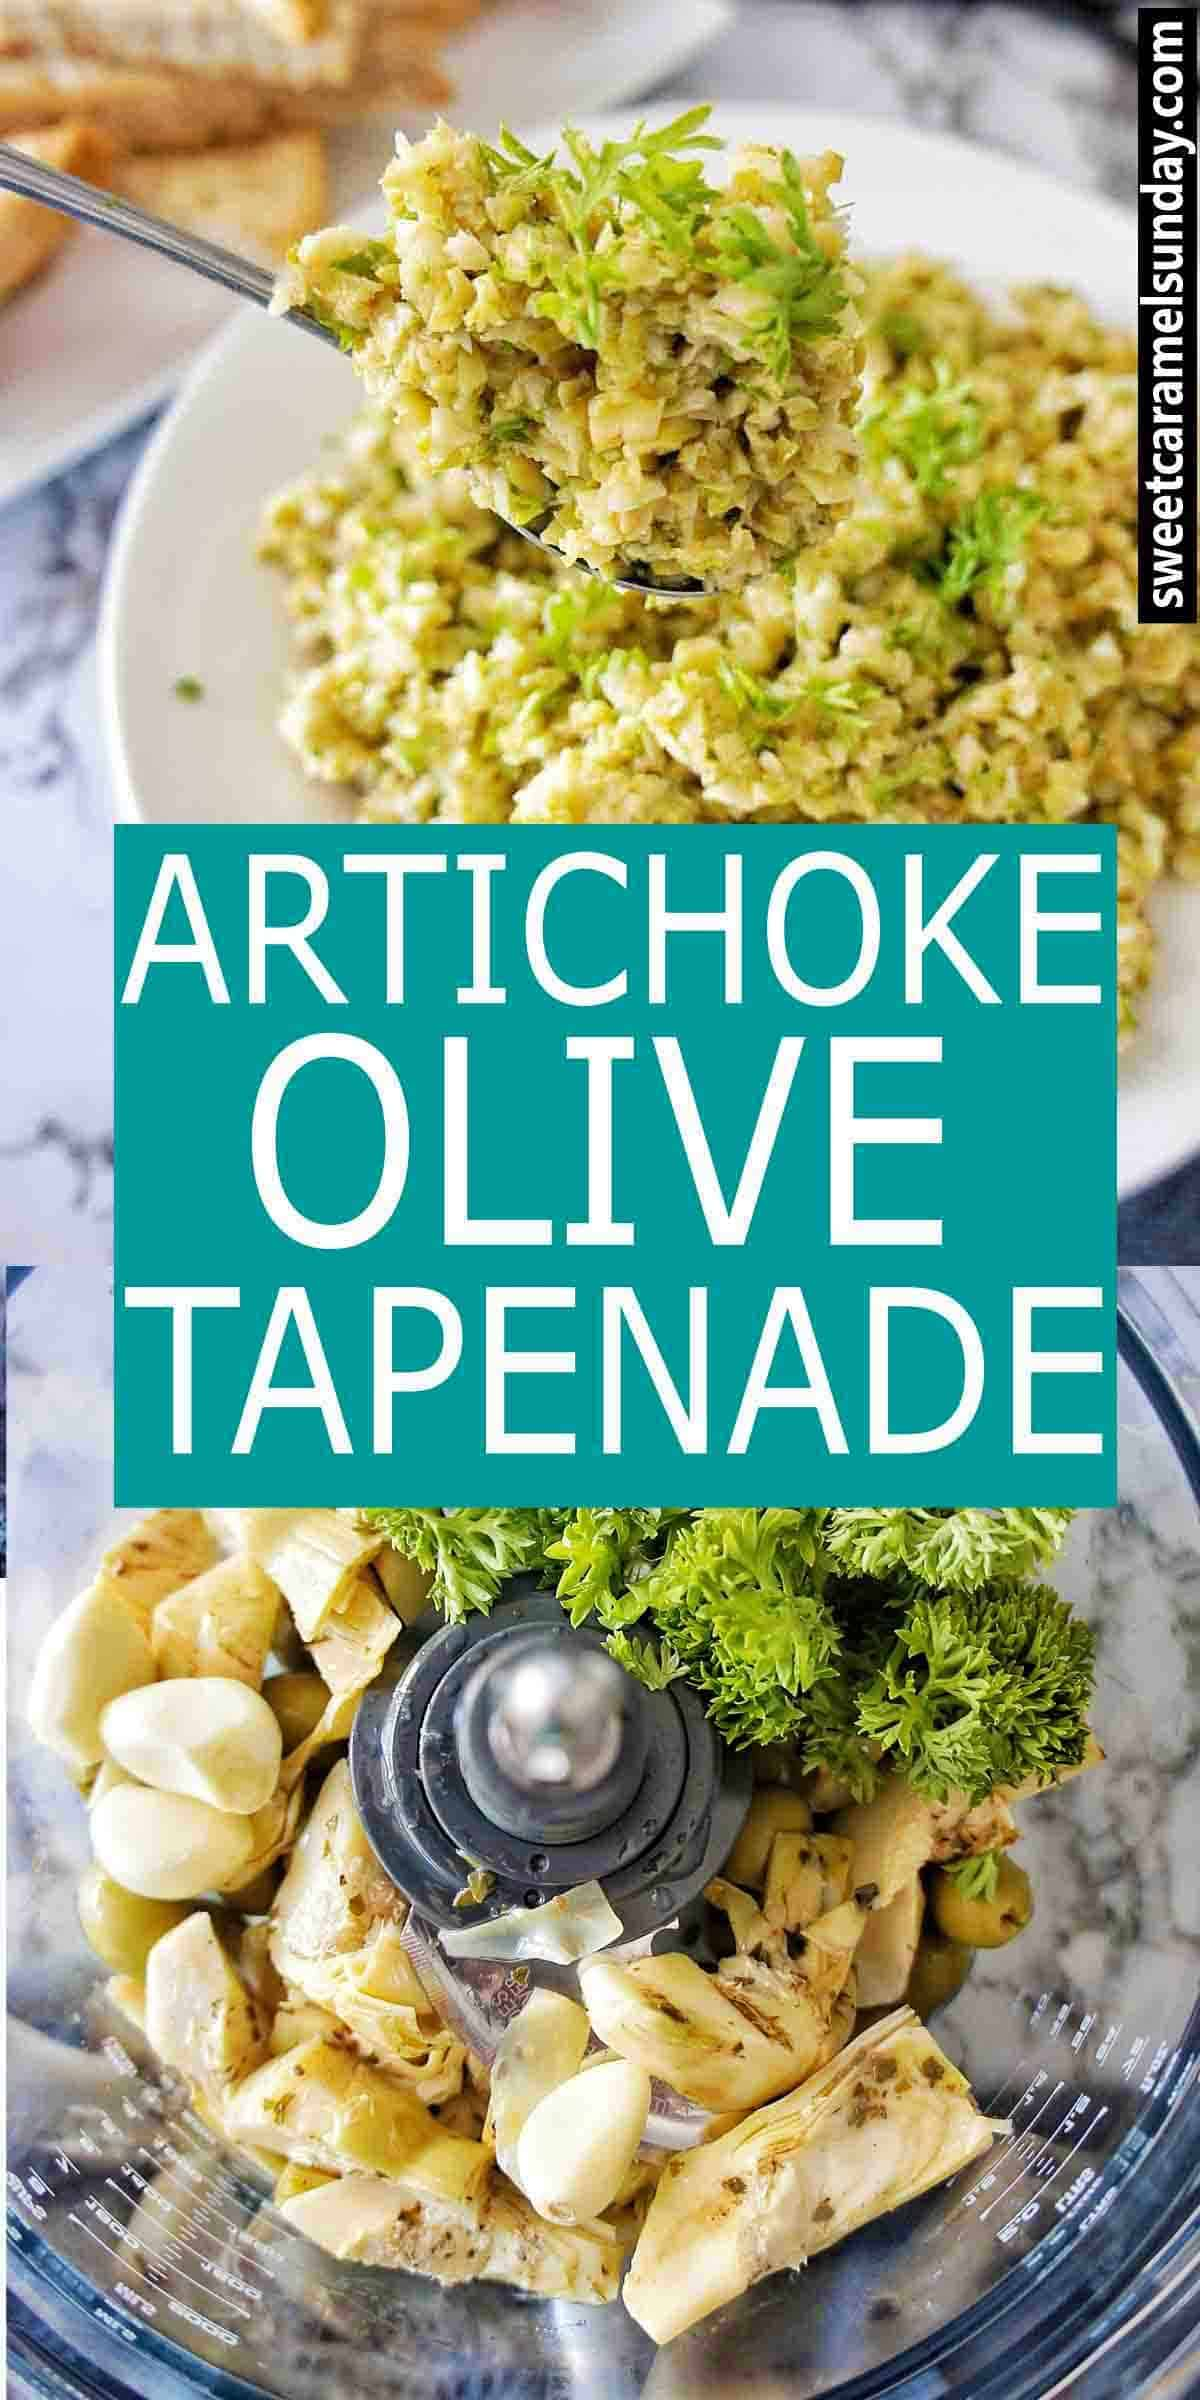 Artichoke Olive Tapenade with text overlay